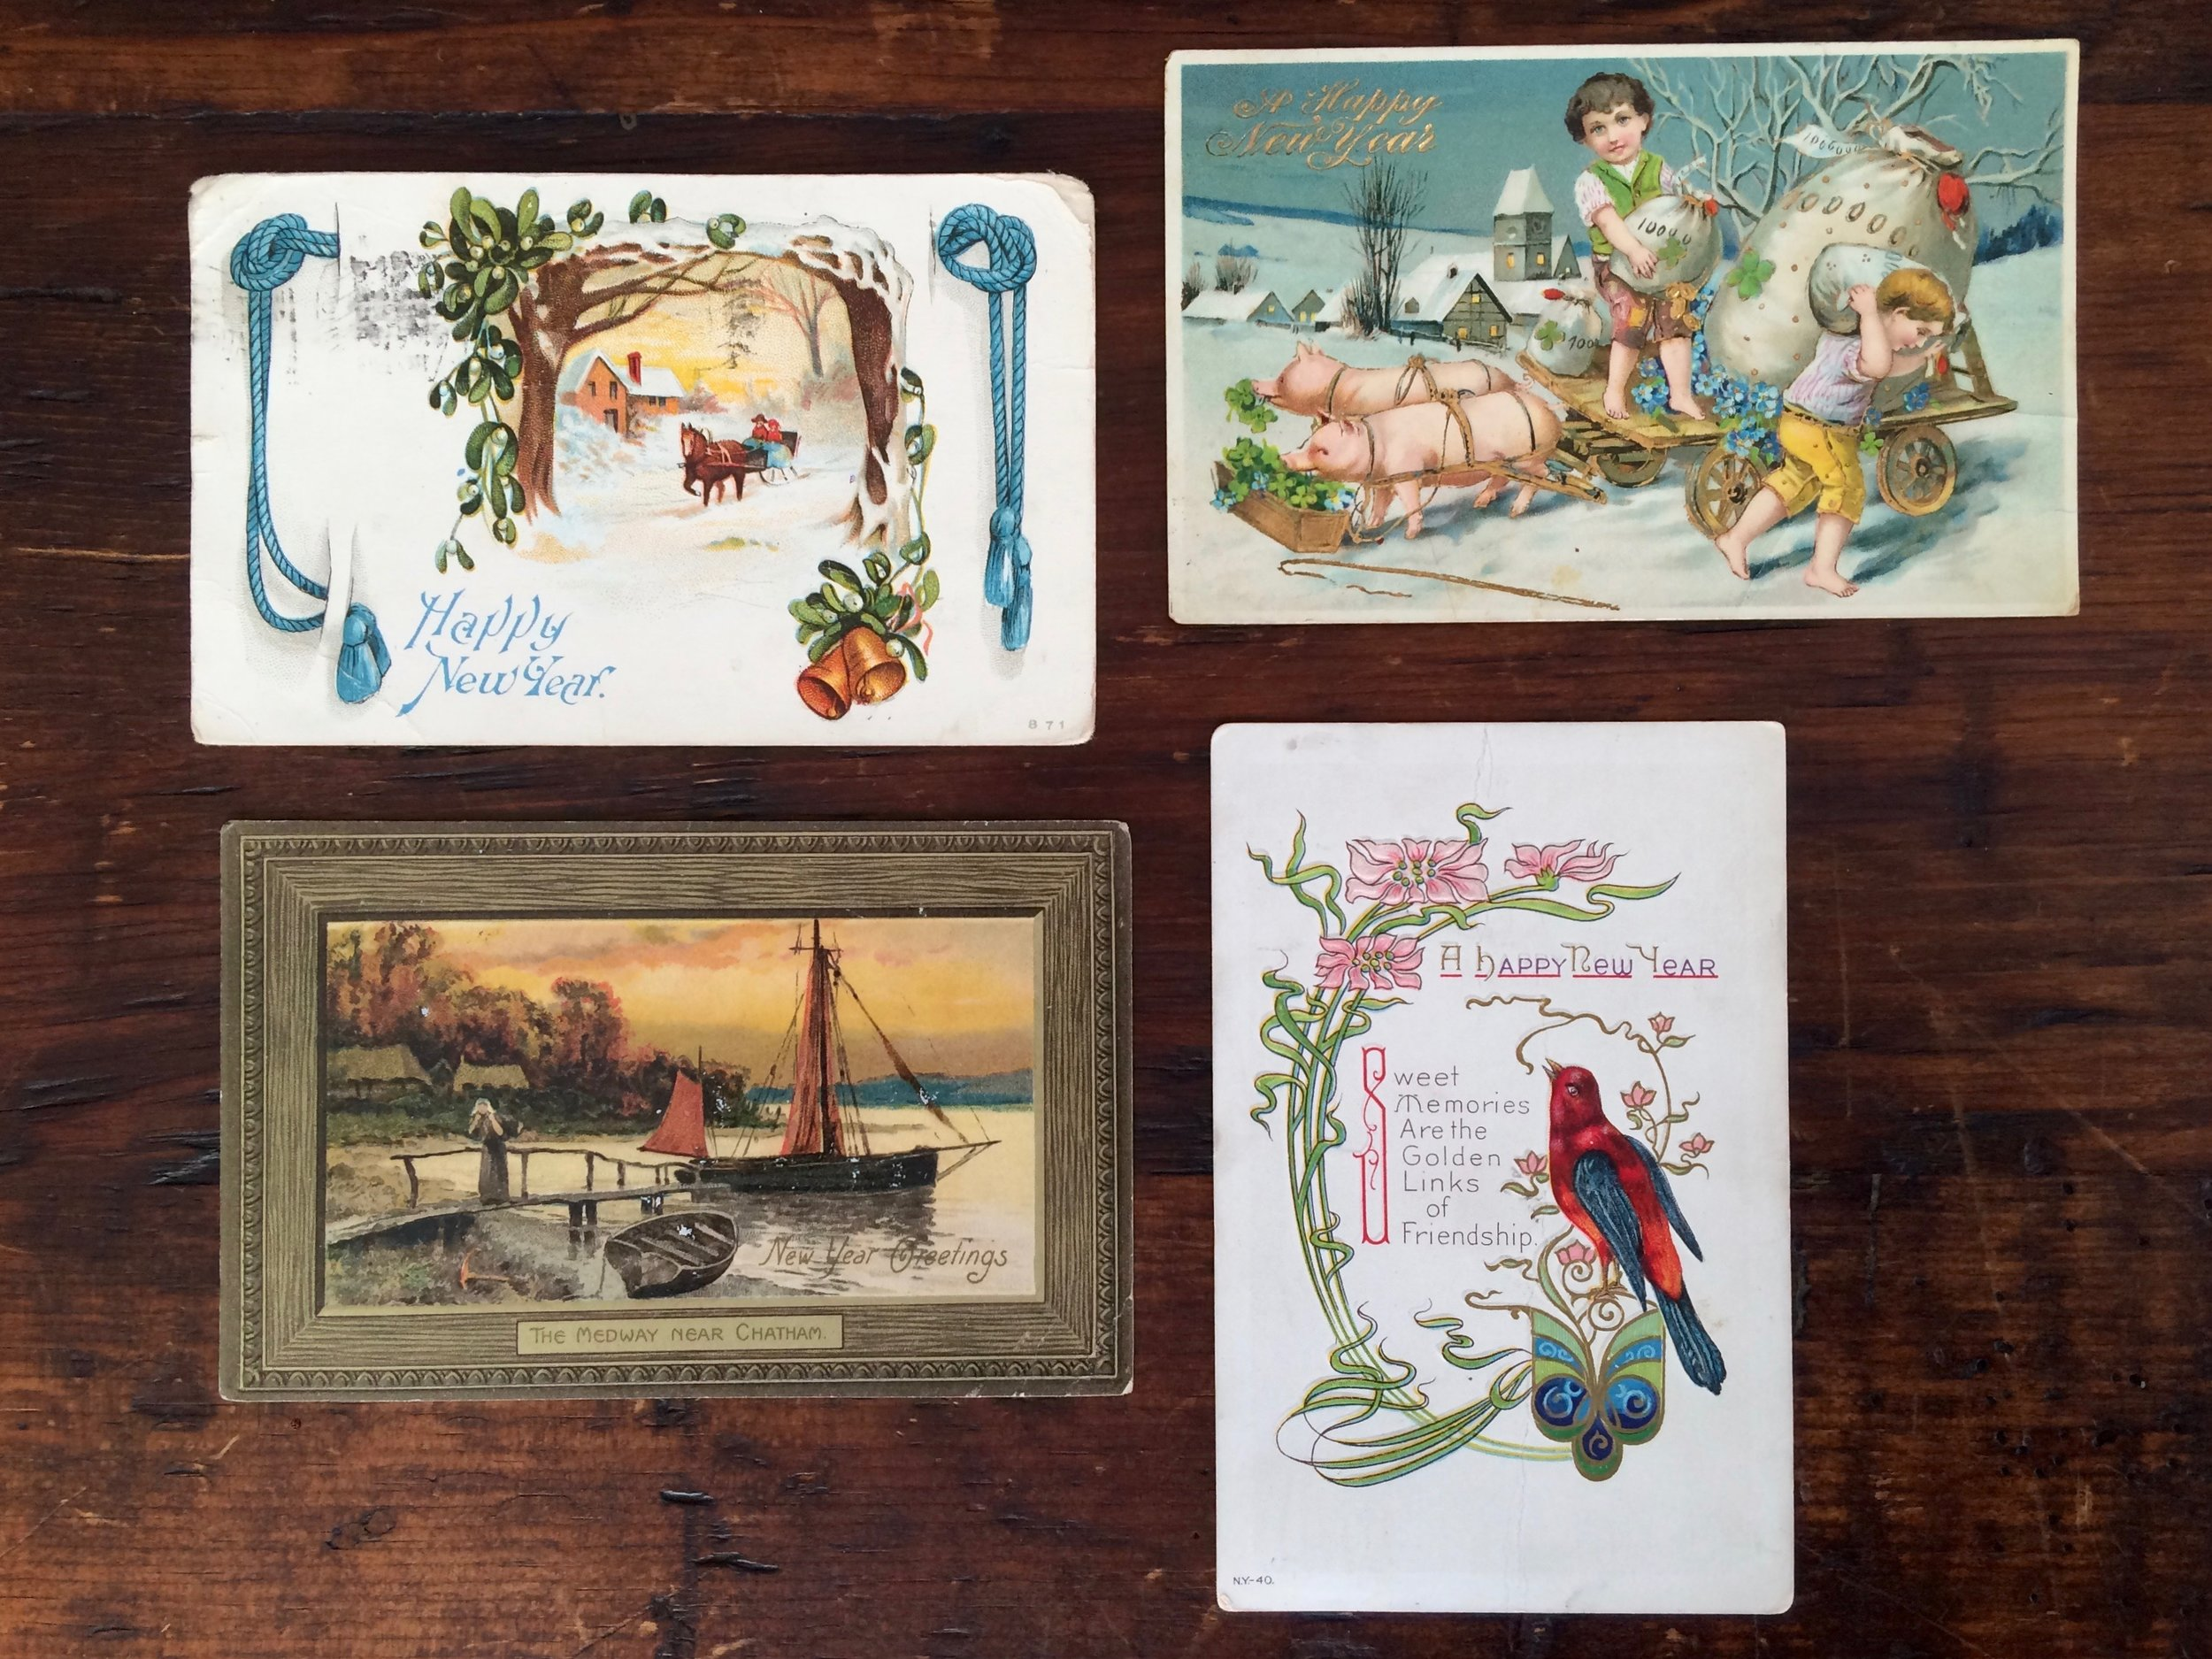 New Year's Eve Postcards